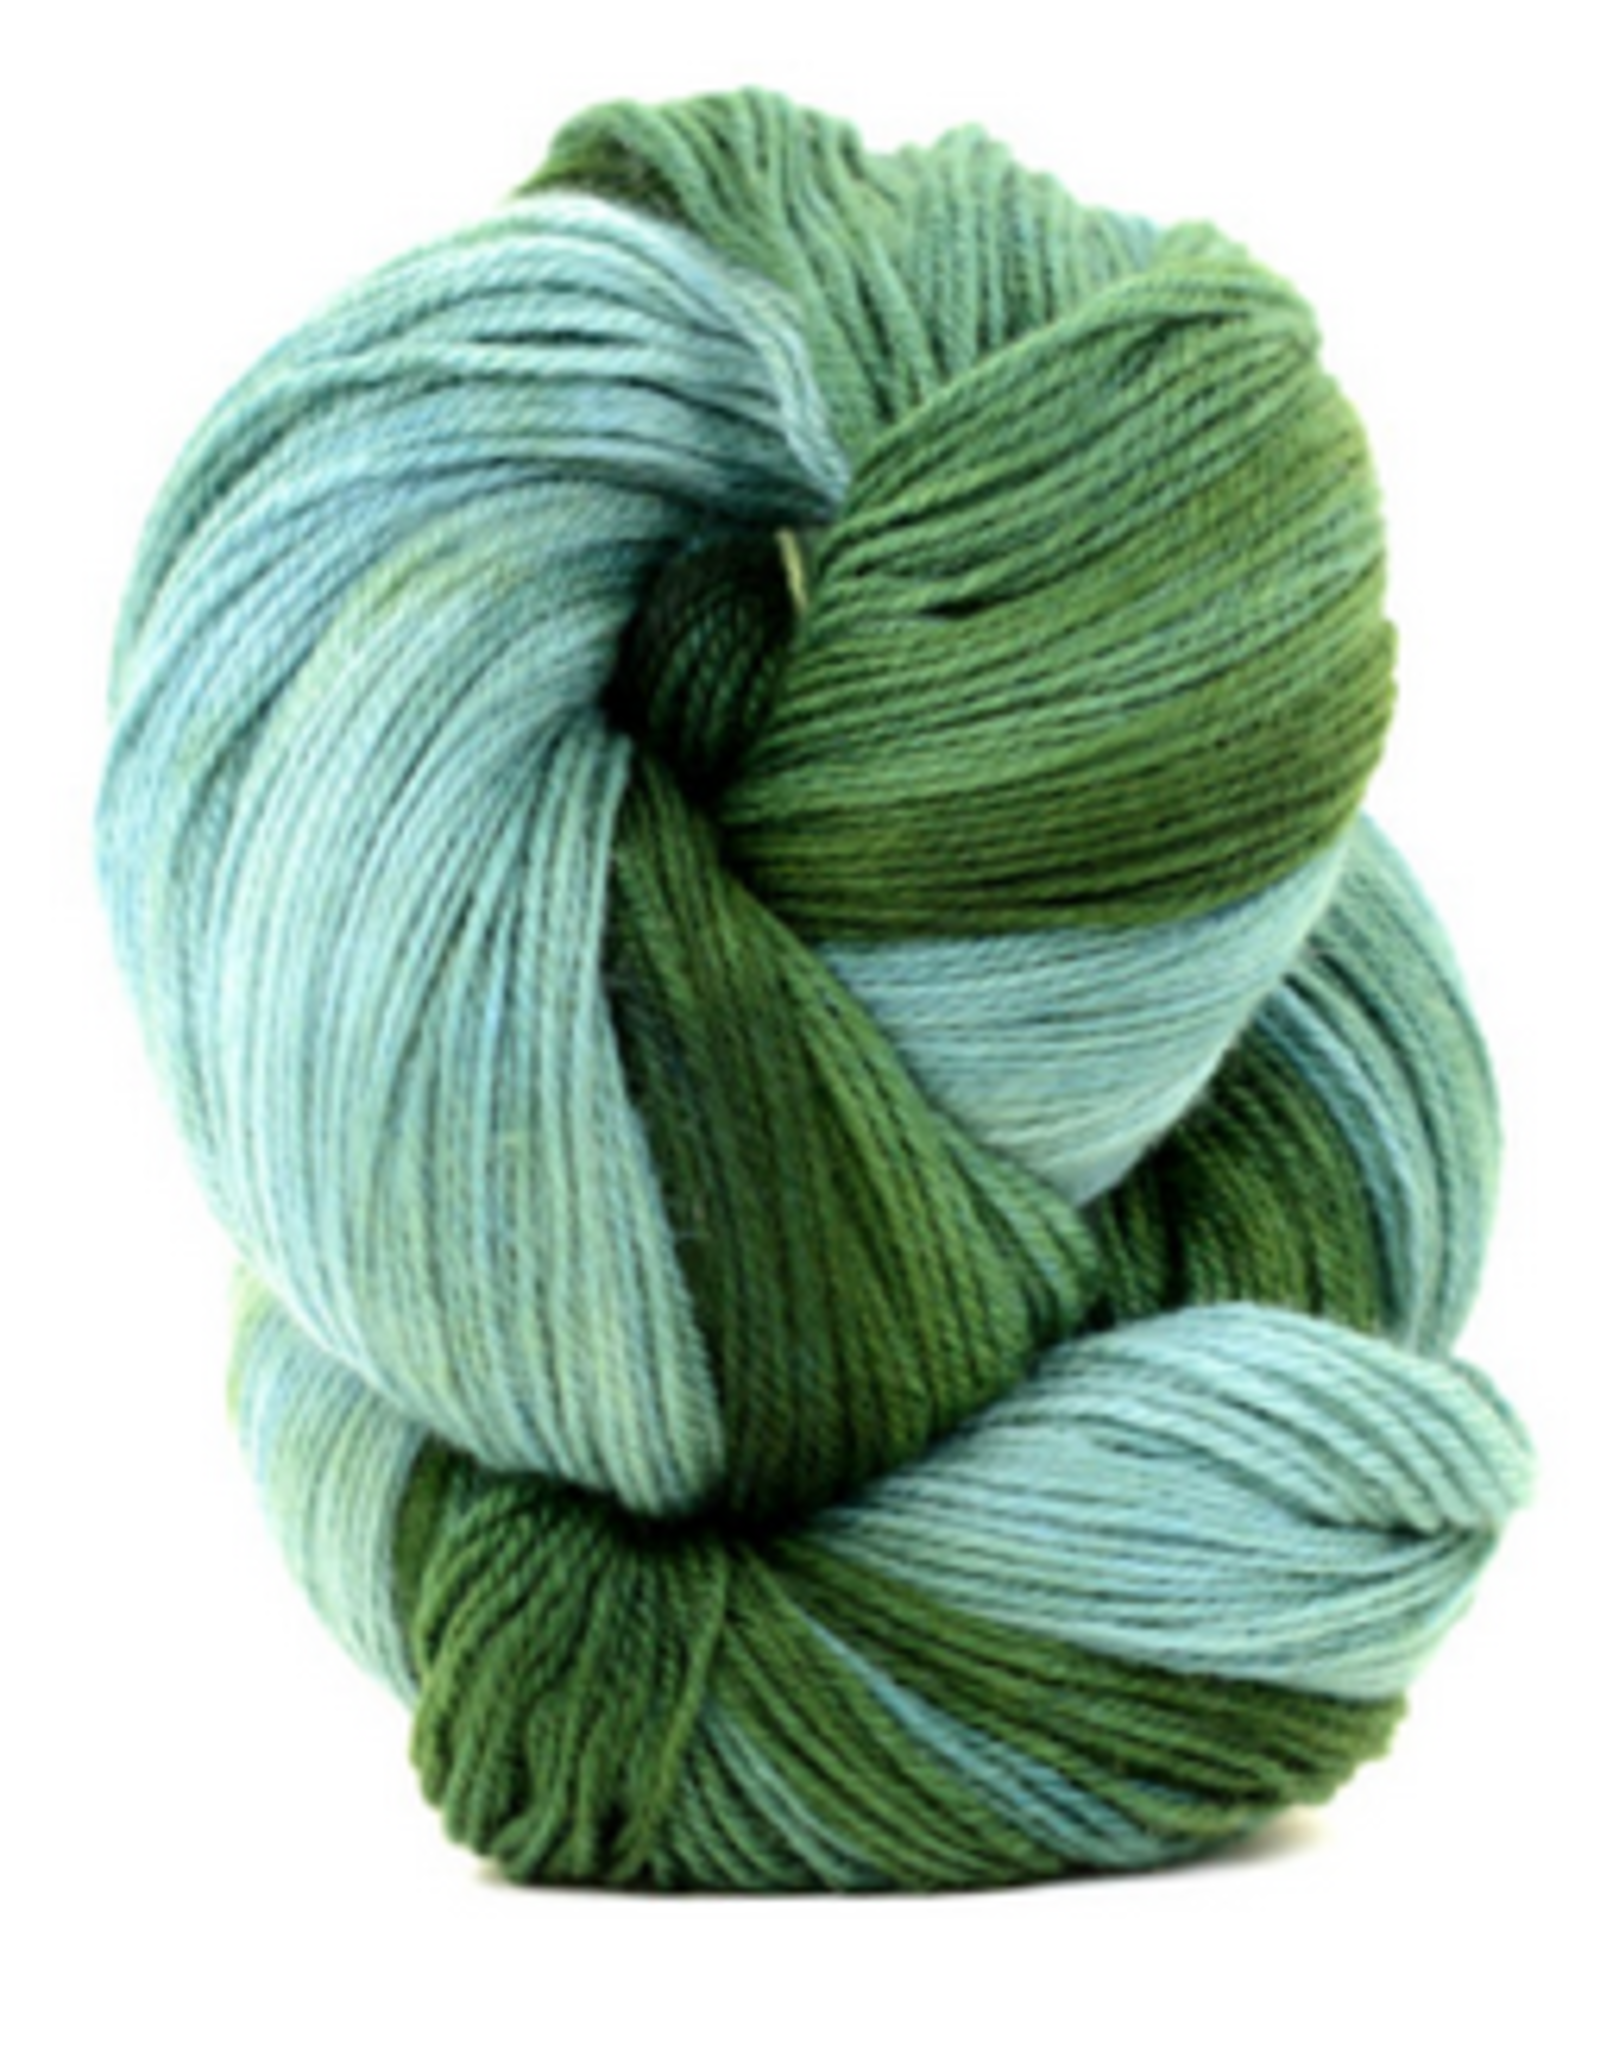 ArtYarns Merino Cloud Ombres